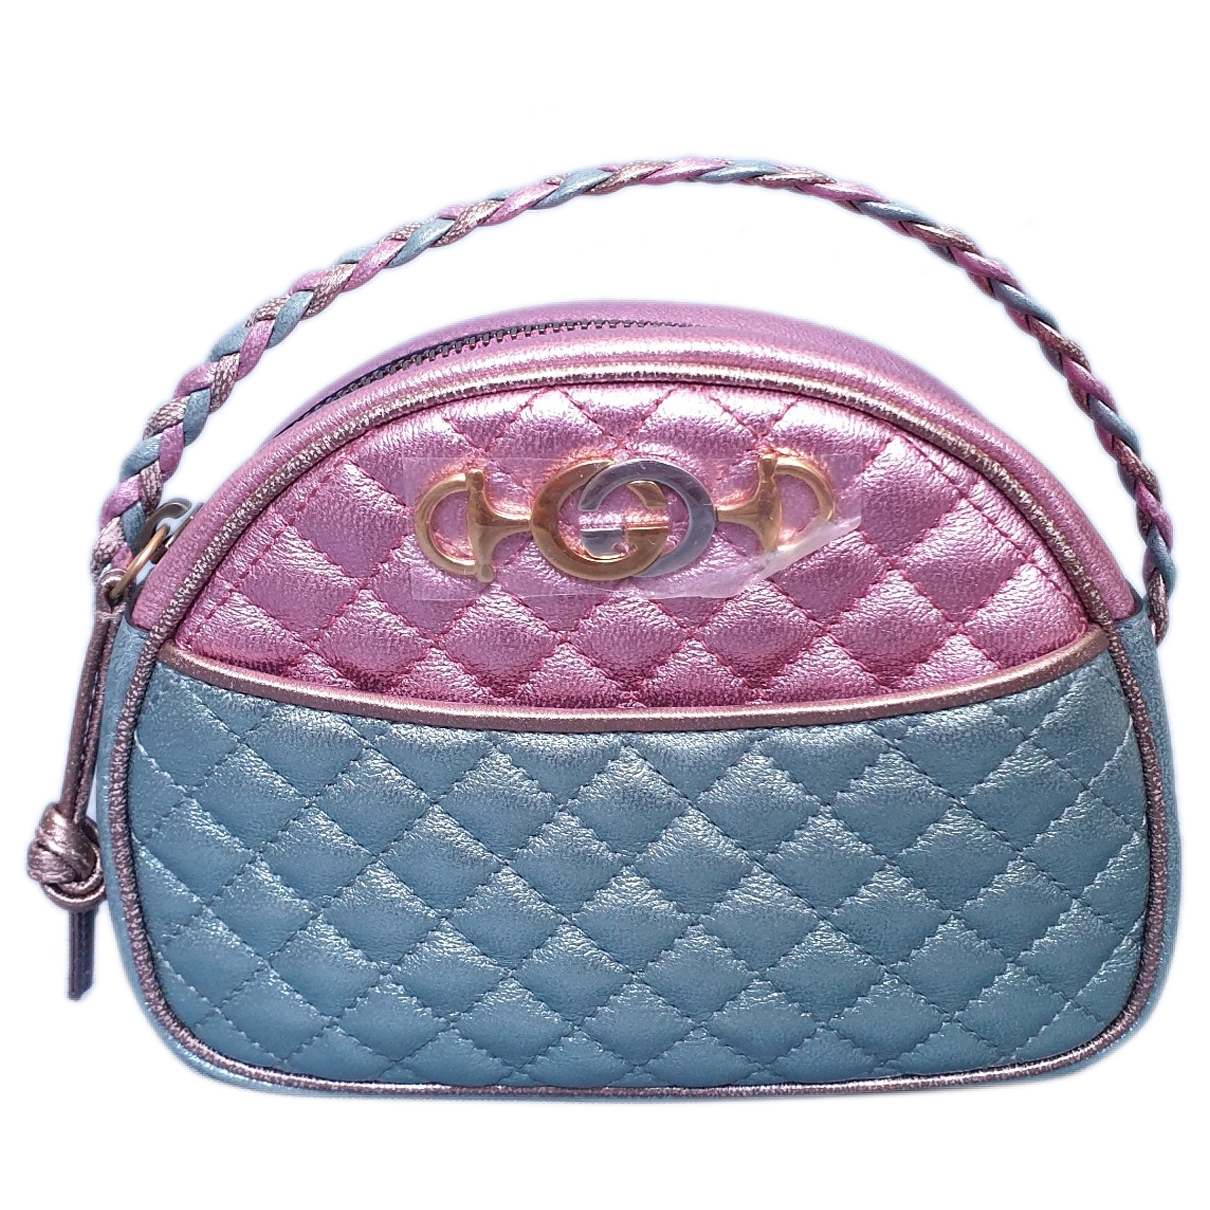 Gucci Laminated Multicolour Leather Clutch bag for Women \N